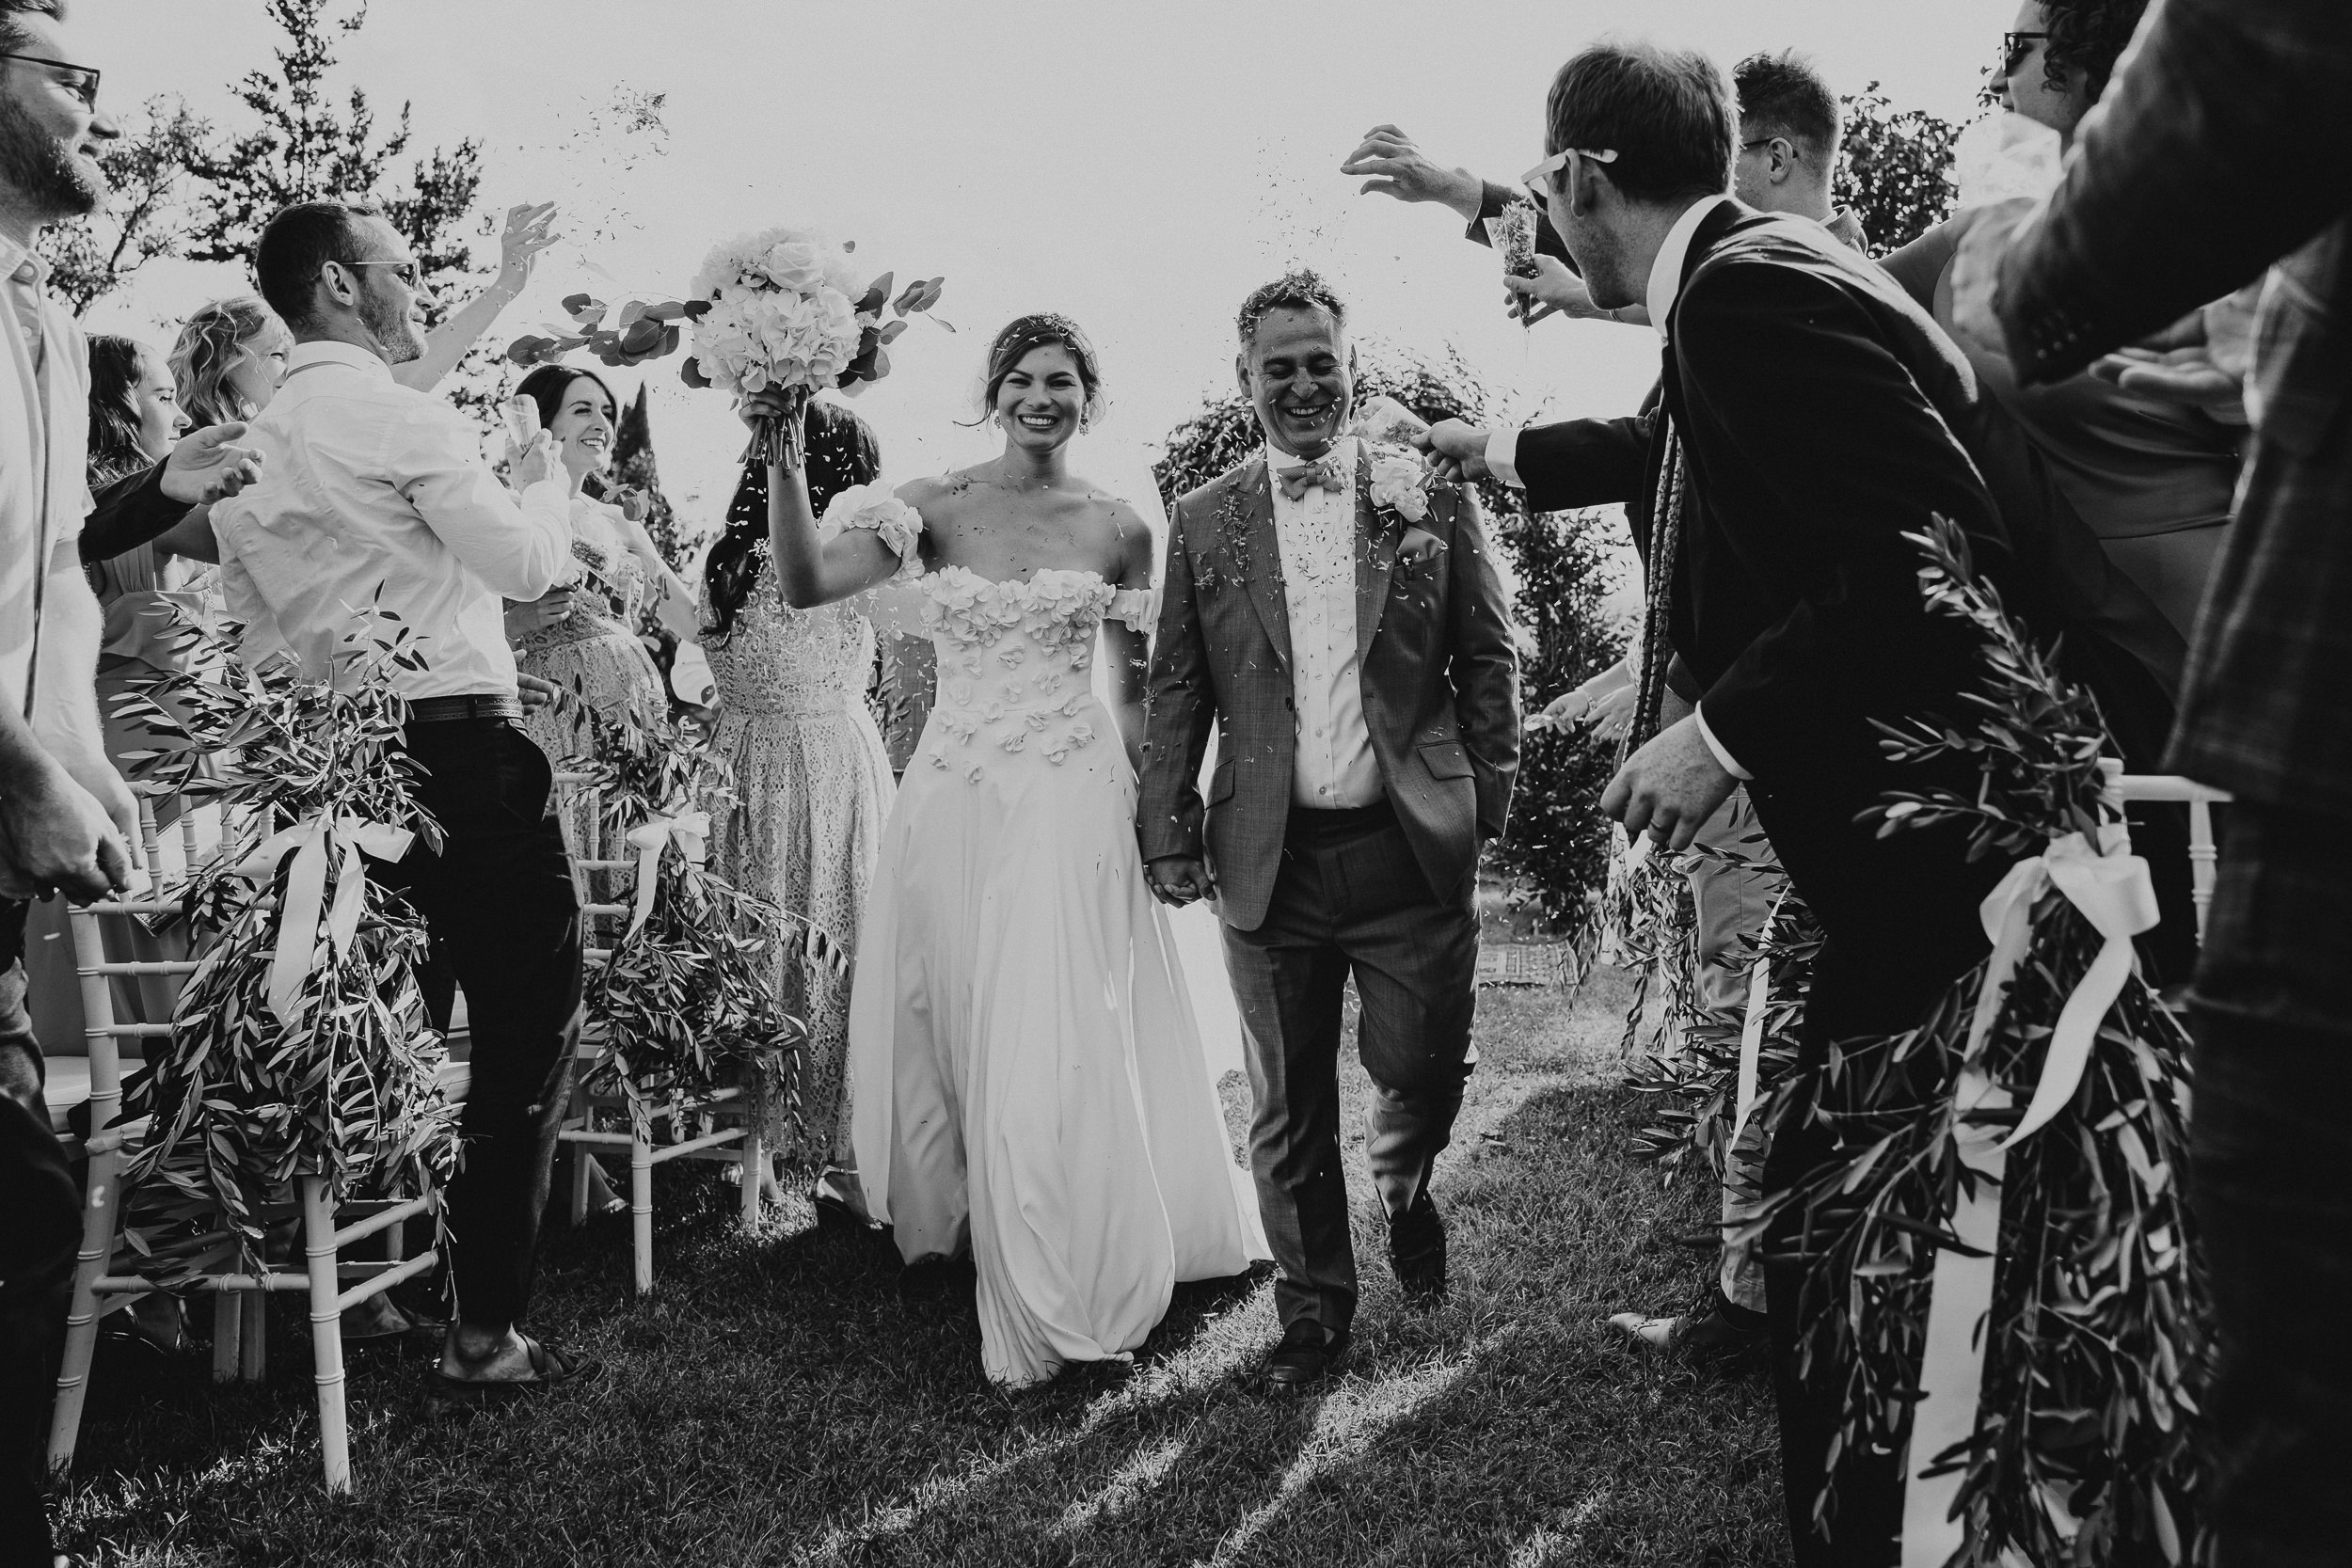 Guests throw confetti at the Bride and Groom